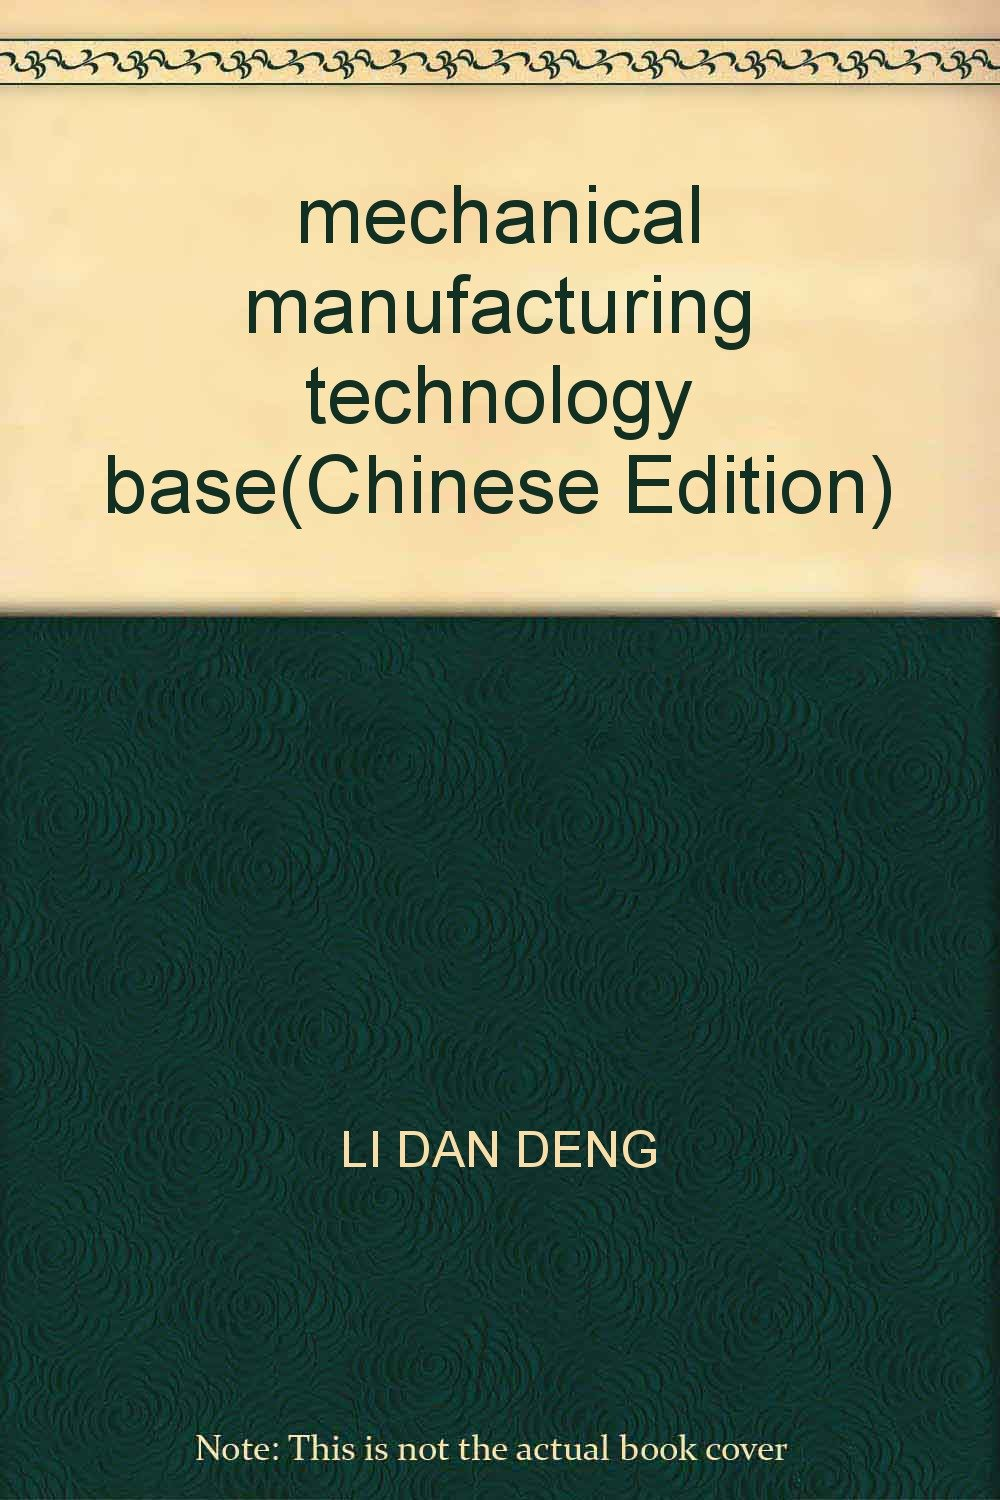 Download mechanical manufacturing technology base(Chinese Edition) ebook